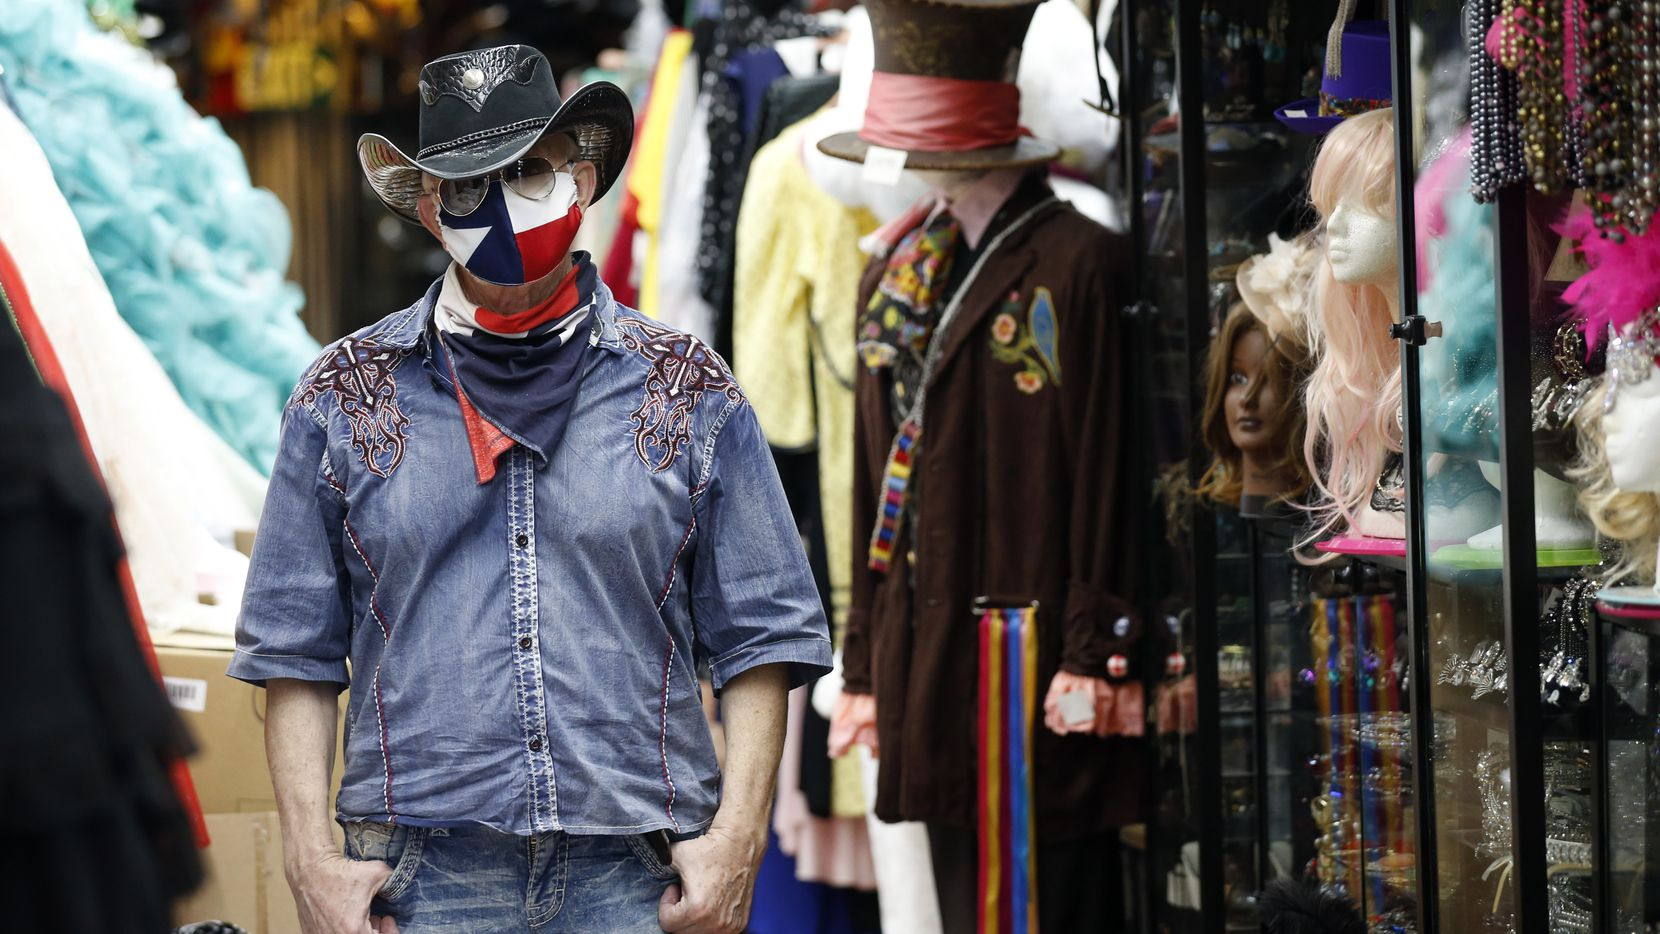 Jerry Purvis, owner of Dallas Vintage Shop in Plano, Texas, said his shop is in danger of going out of business as all the events that require costumes, gowns and hats are canceled due to COVID-19. The store pivoted to making fashionable masks but made just $15.14 on Monday.